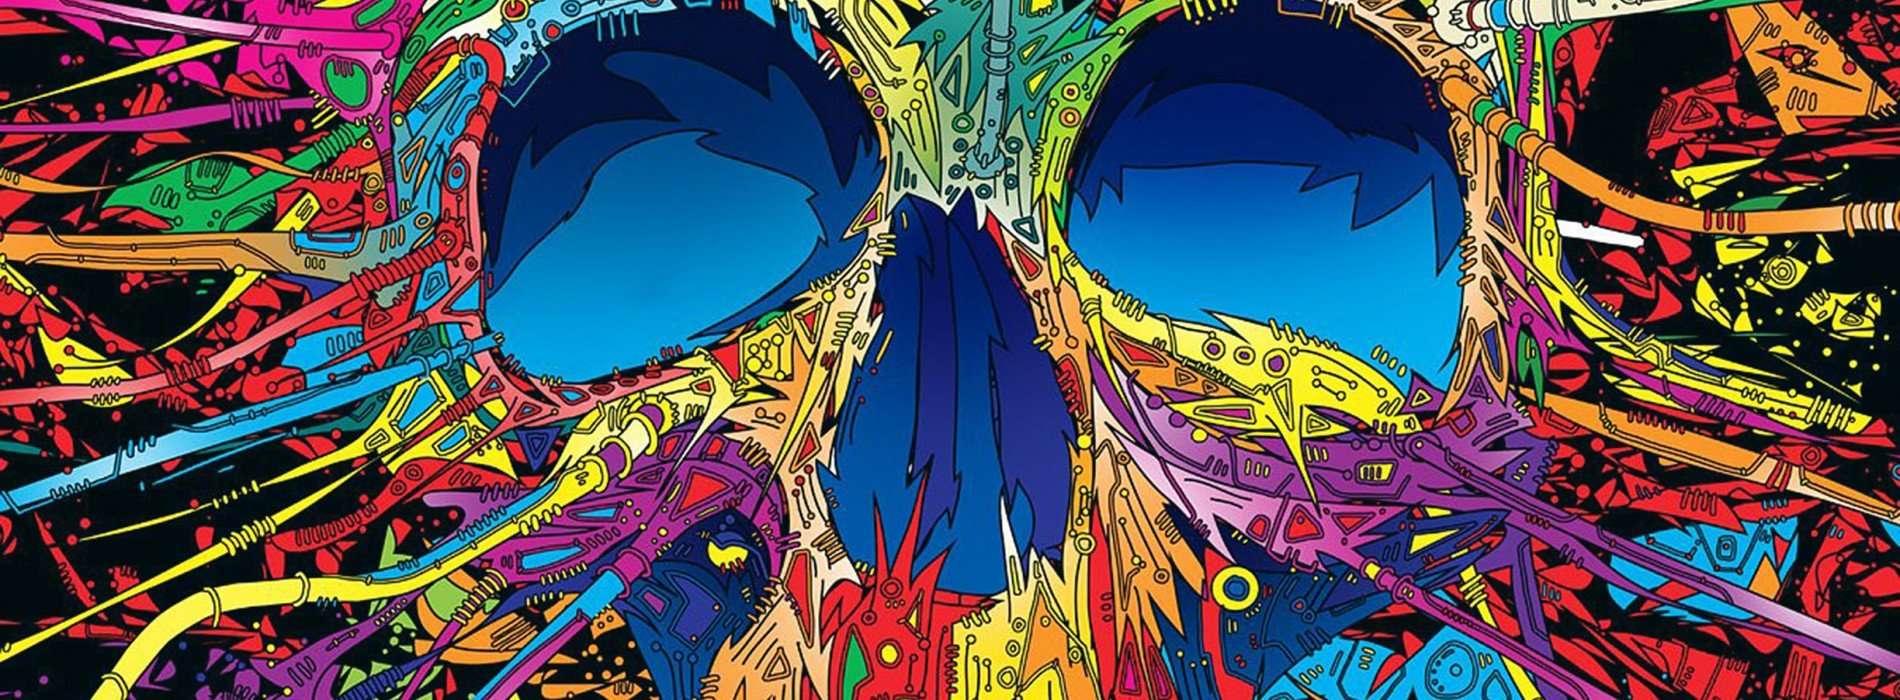 Ipad Retina Wallpaper Art Skull: 28 Psychedelic QHD Wallpapers That Will Make Your